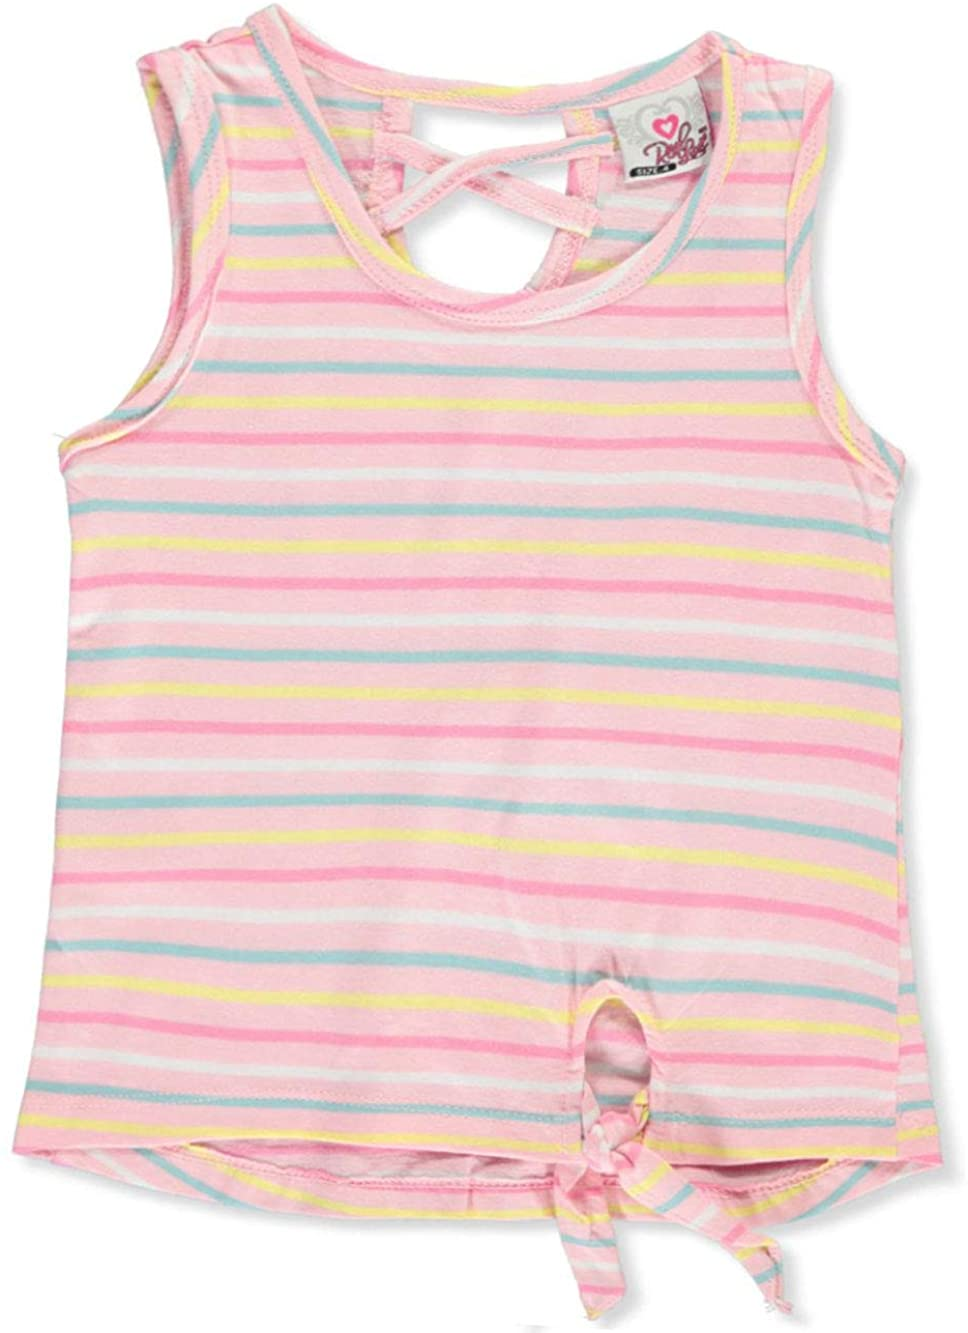 Real Love Little Girls Stripe Tank Top - Pink/Multi, 4